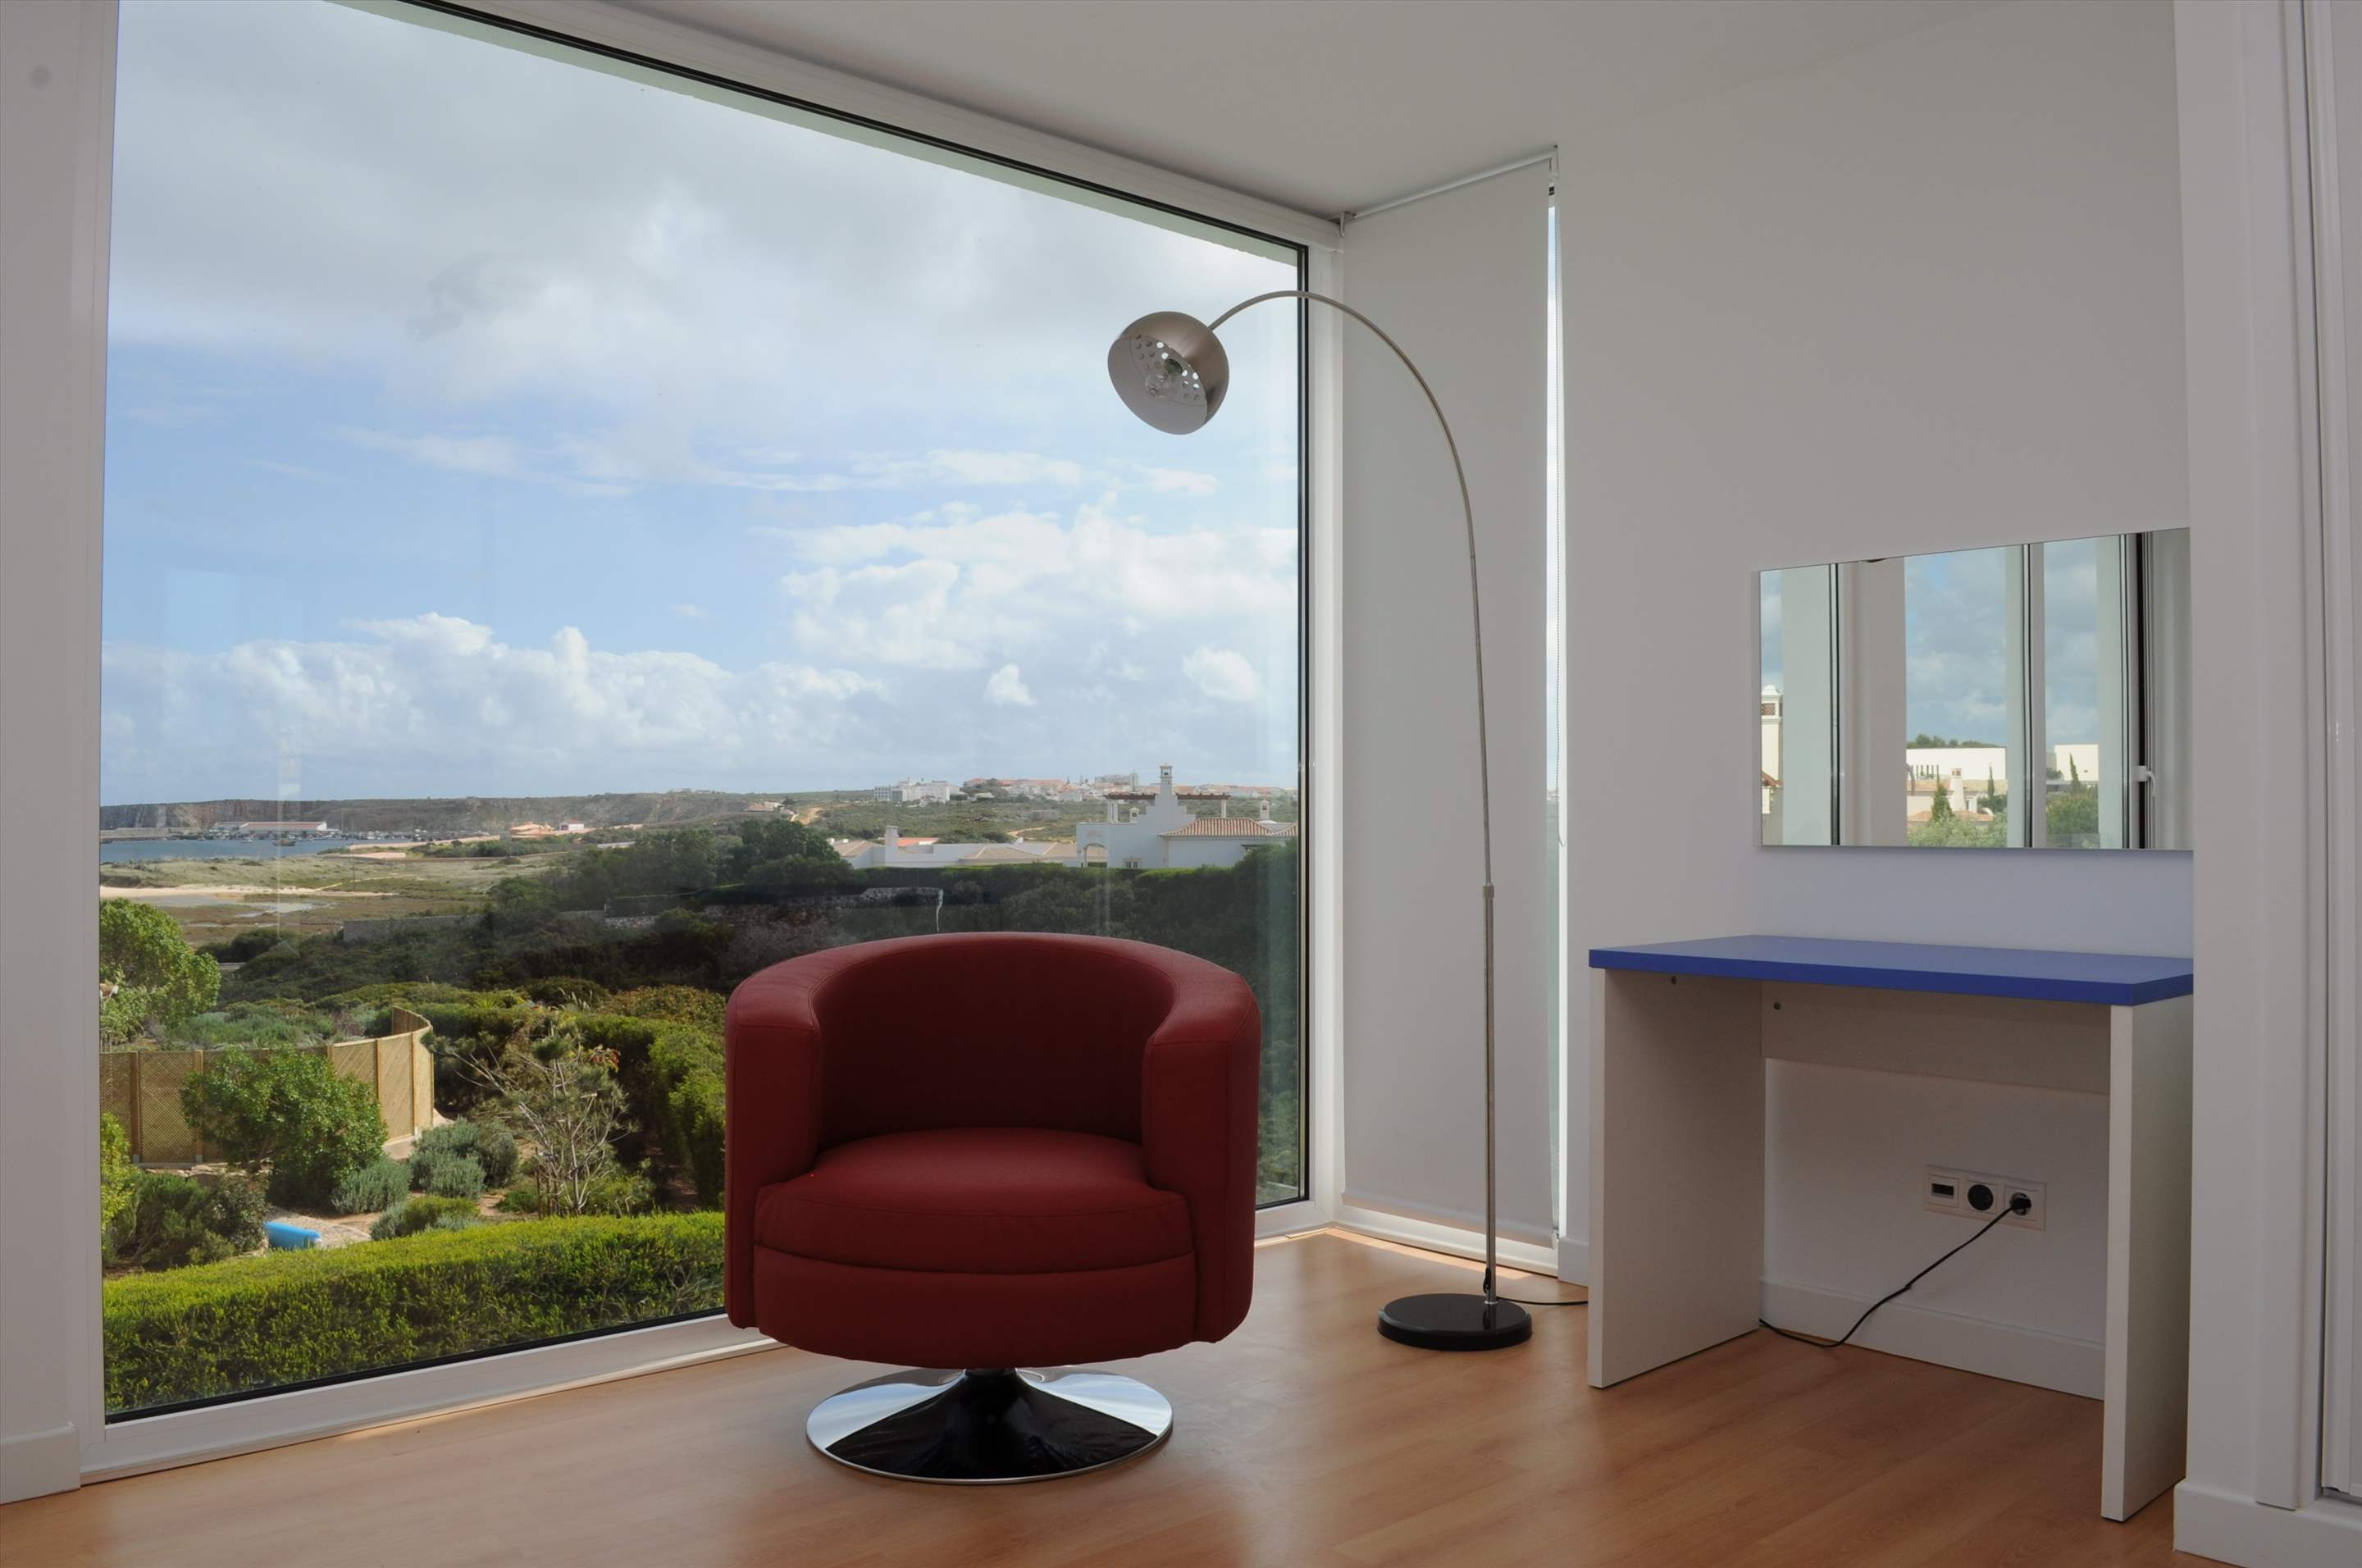 Martinhal Luxury Villa No.6, 3 bedroom villa in Martinhal Sagres, Algarve Photo #11